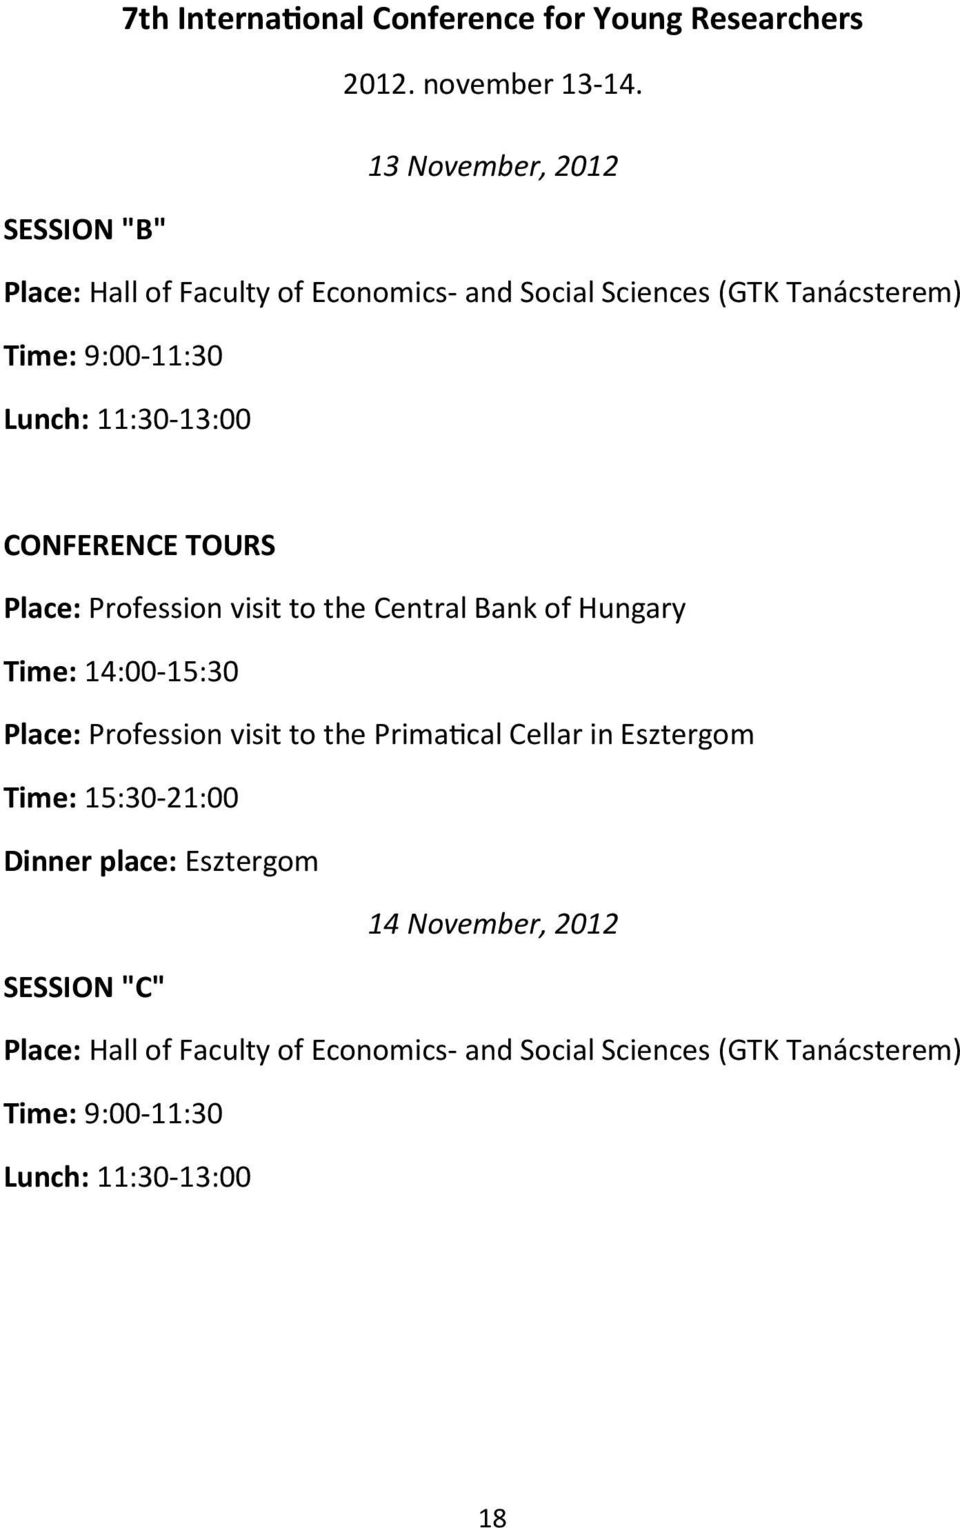 11:30-13:00 CONFERENCE TOURS Place: Profession visit to the Central Bank of Hungary Time: 14:00-15:30 Place: Profession visit to the